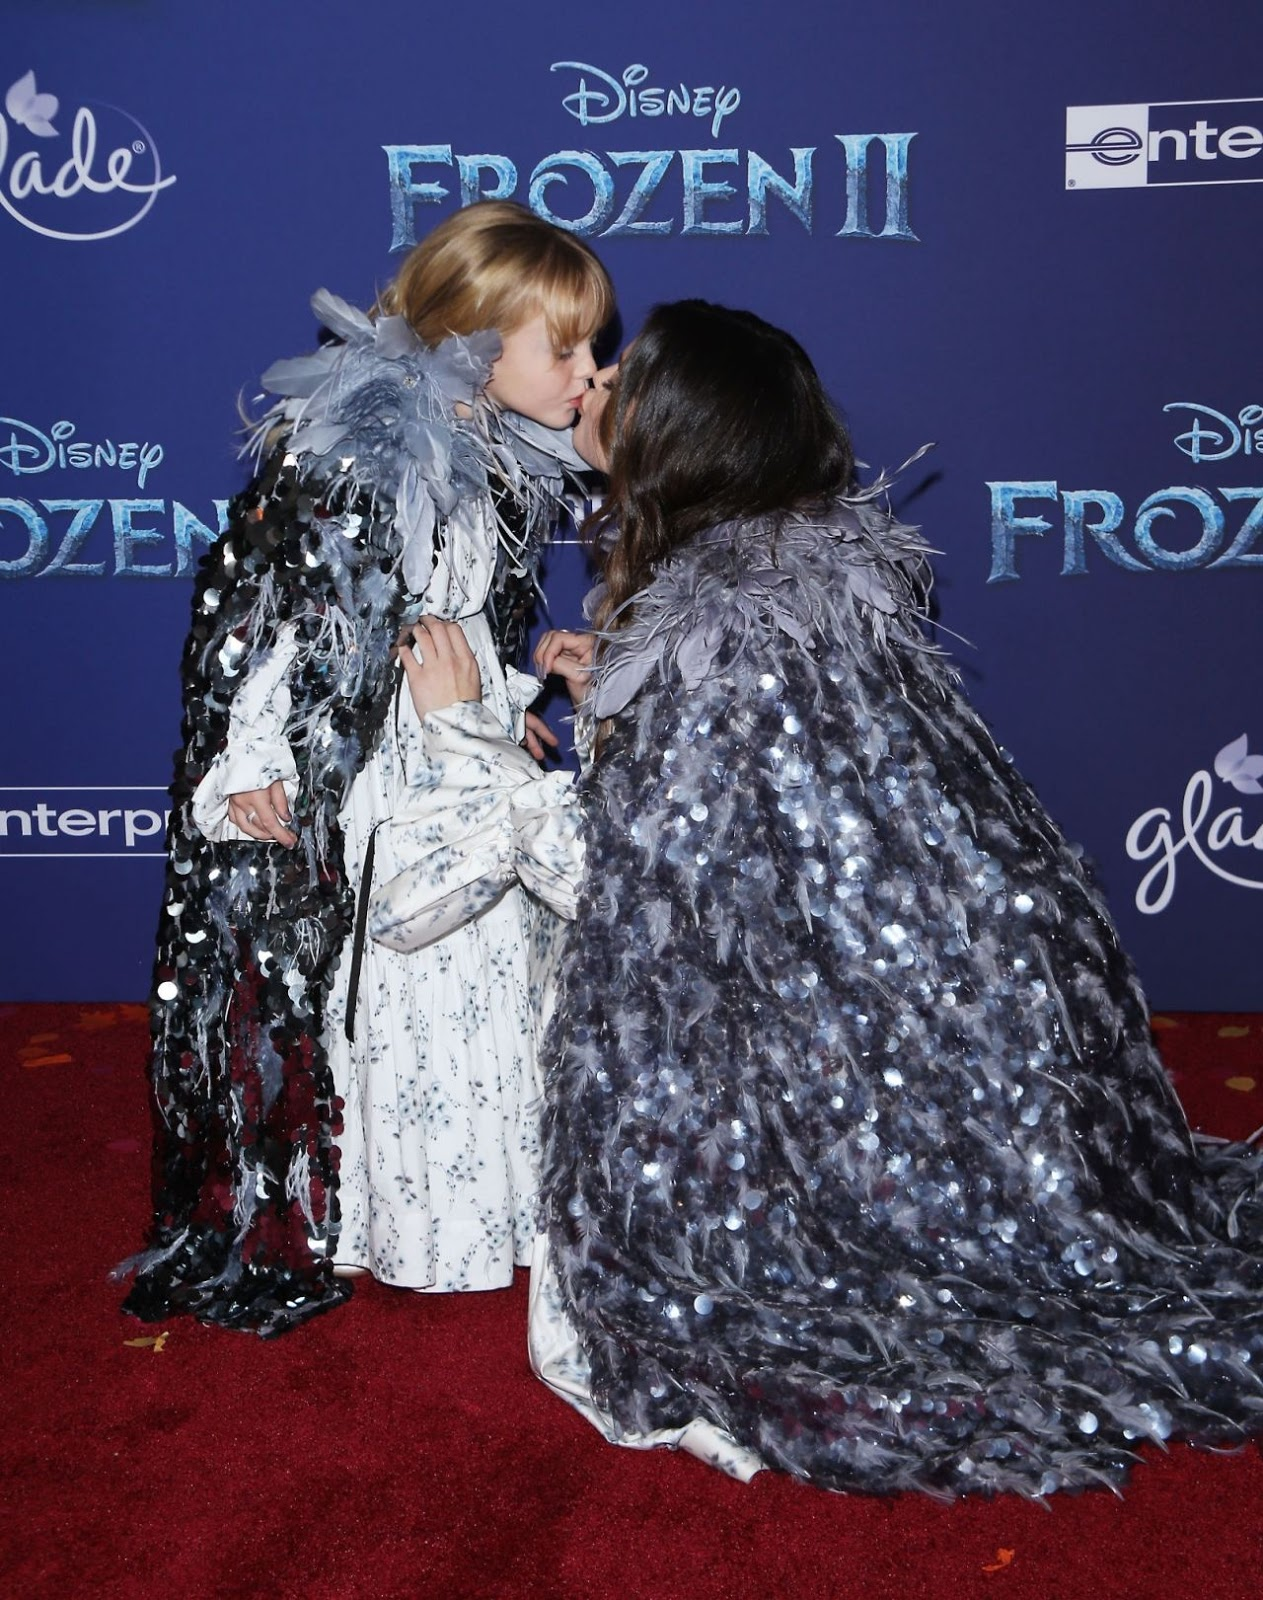 Selena Gomez, 27, plants a kiss on sister Gracie, six, as the two match in floral dresses and capes at the Frozen II premiere